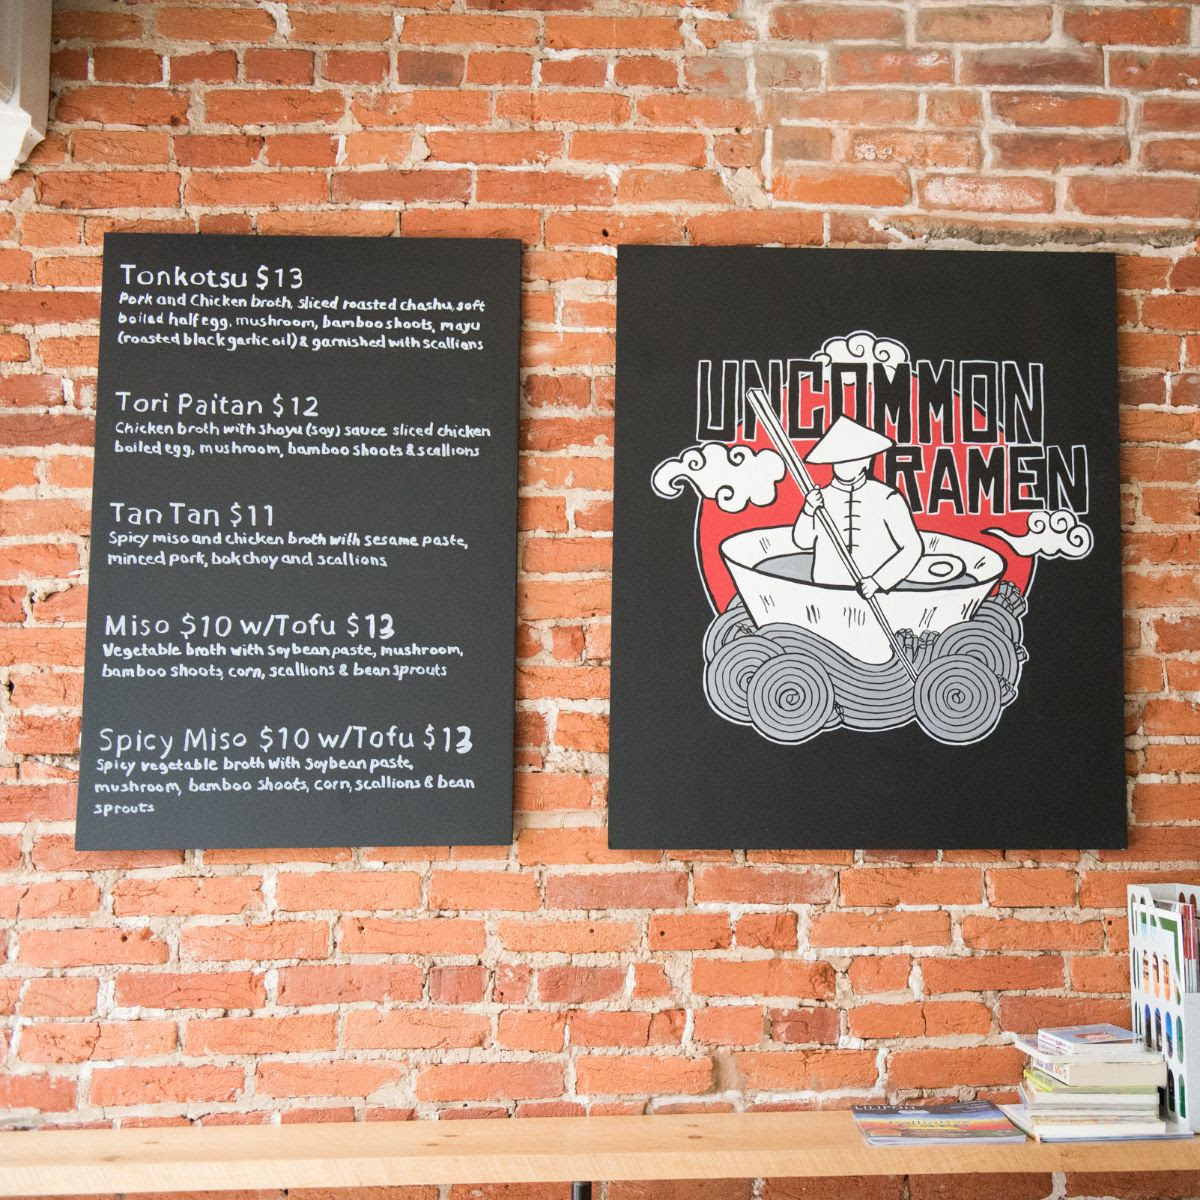 uncommon ramen - Sol Kitchen has recently welcomed Chef Andrew Ko from NYC to share our gorgeous space on Bridge Street. Uncommon Ramen, a brand new Ramen restaurant, operates out of Sol Kitchen every Thursday-Sunday, from 5pm